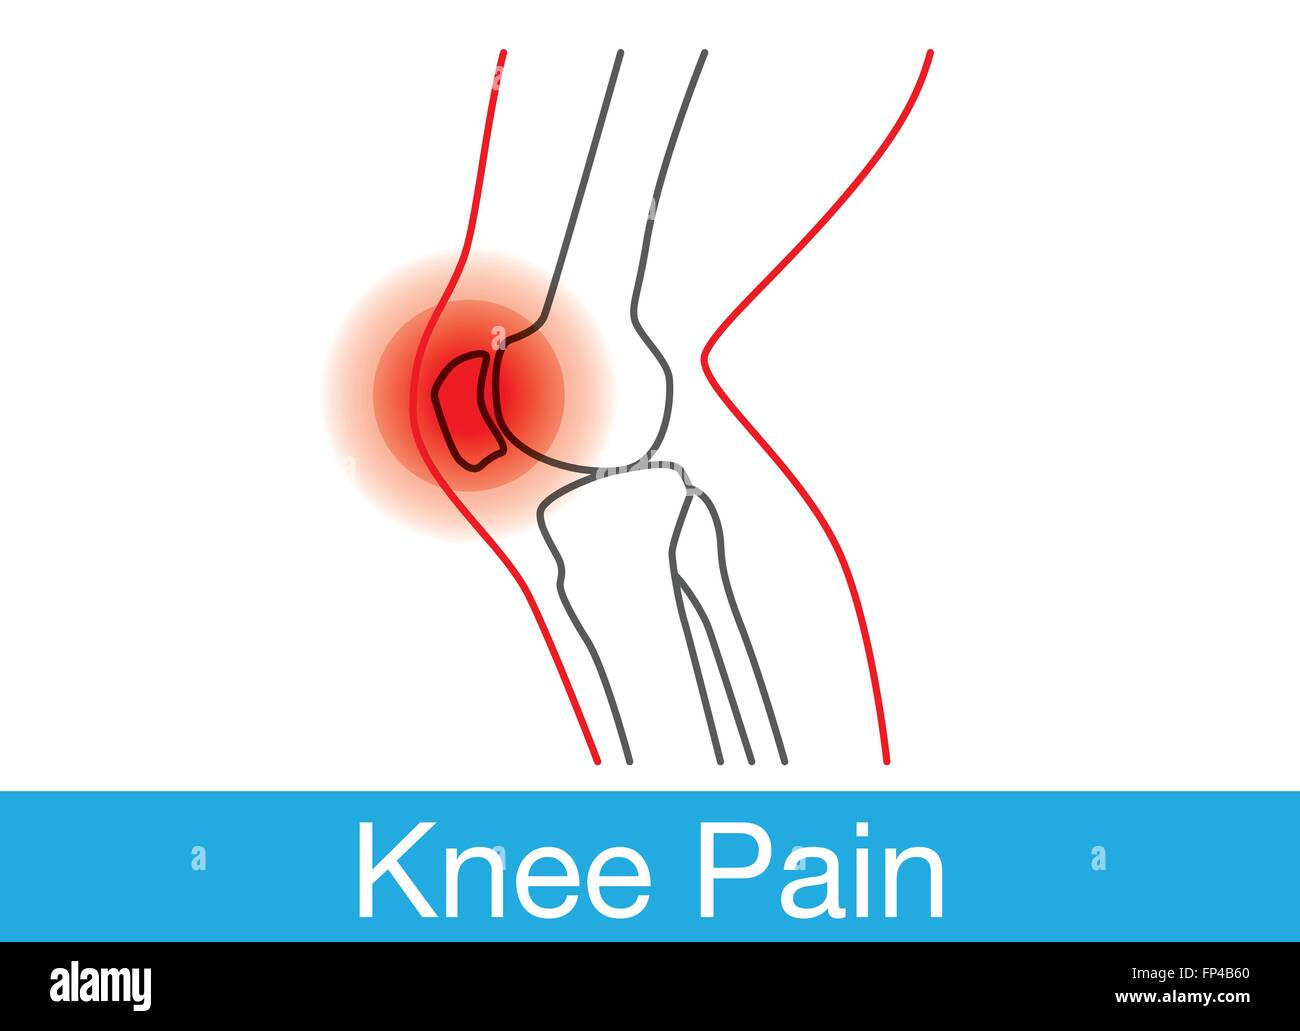 Diagram Outline Pain Block And Schematic Diagrams Blank Human Body Knee Stock Vector Art Illustration Image Rh Alamy Com Inside The Research